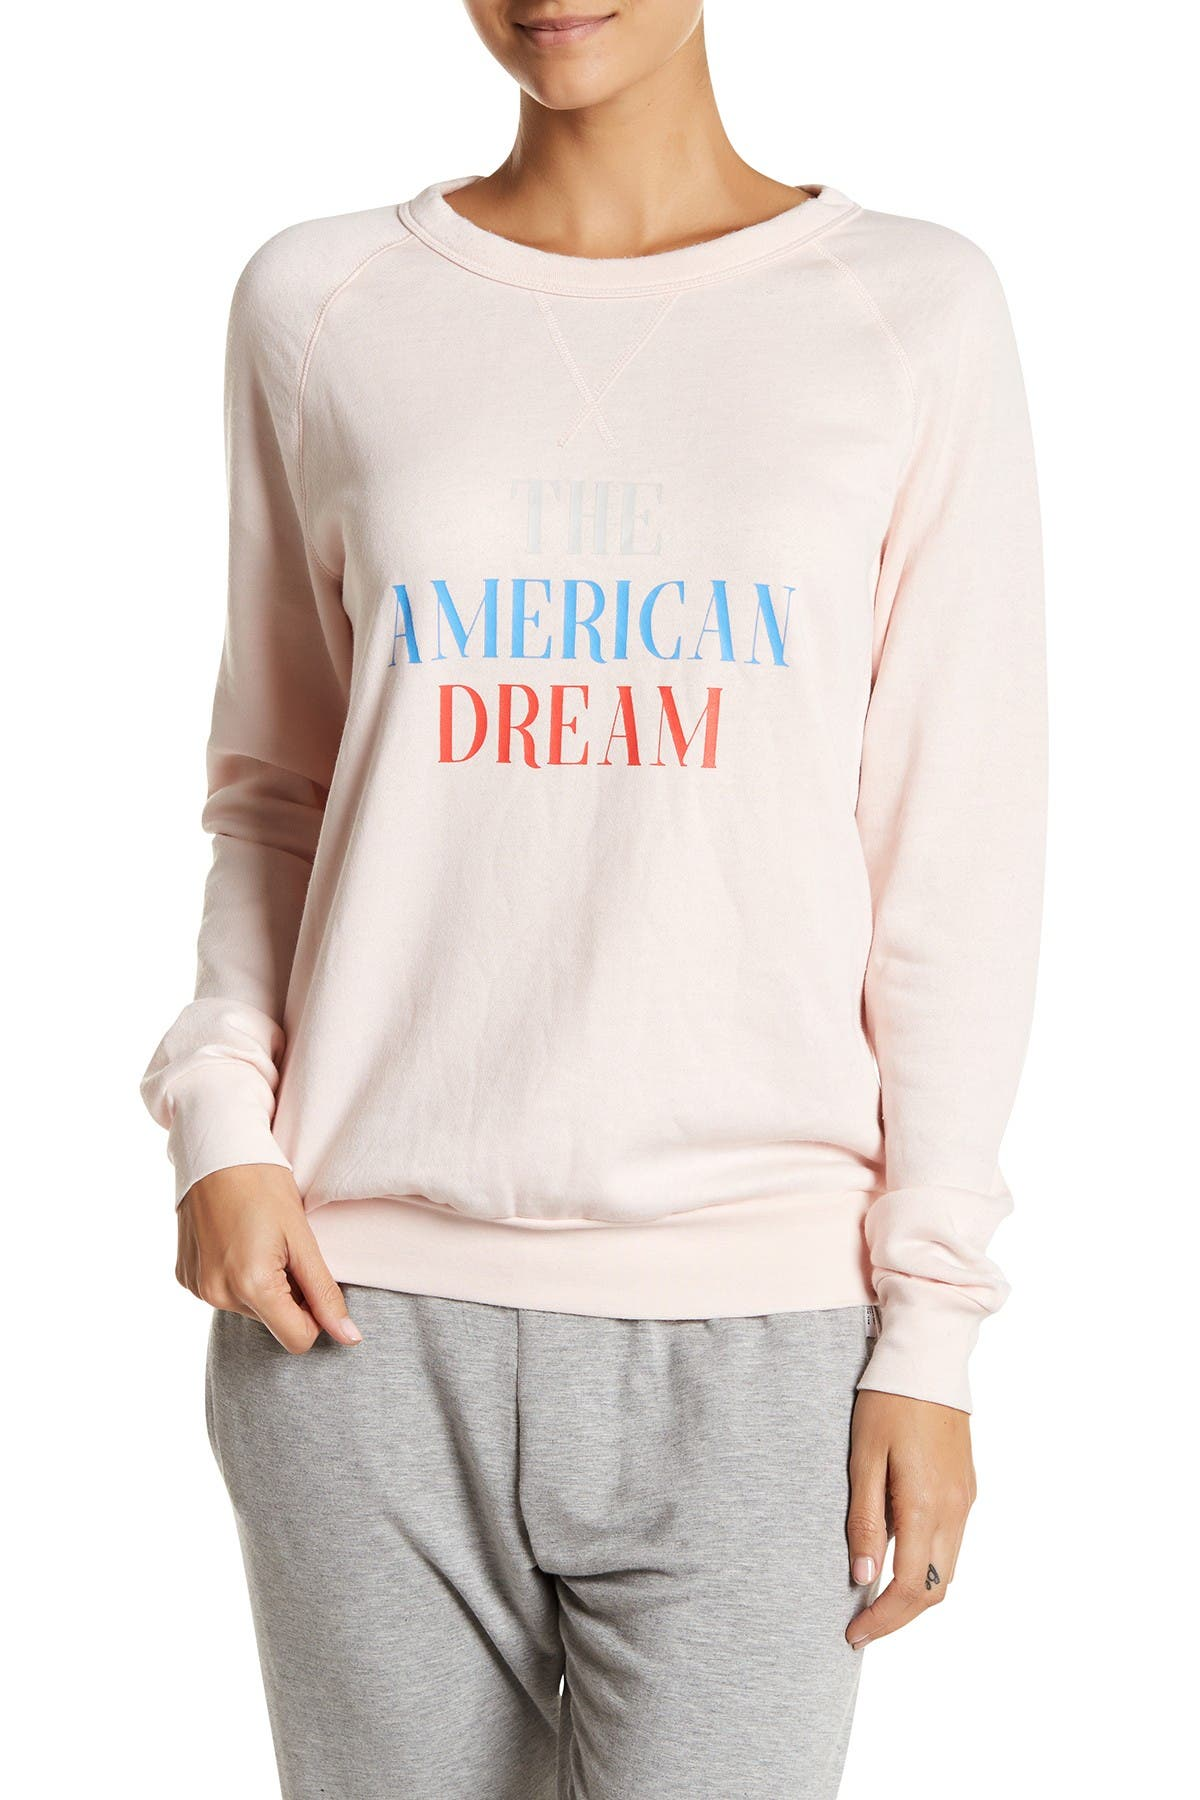 Image of The Laundry Room Graphic Pullover Sweatshirt